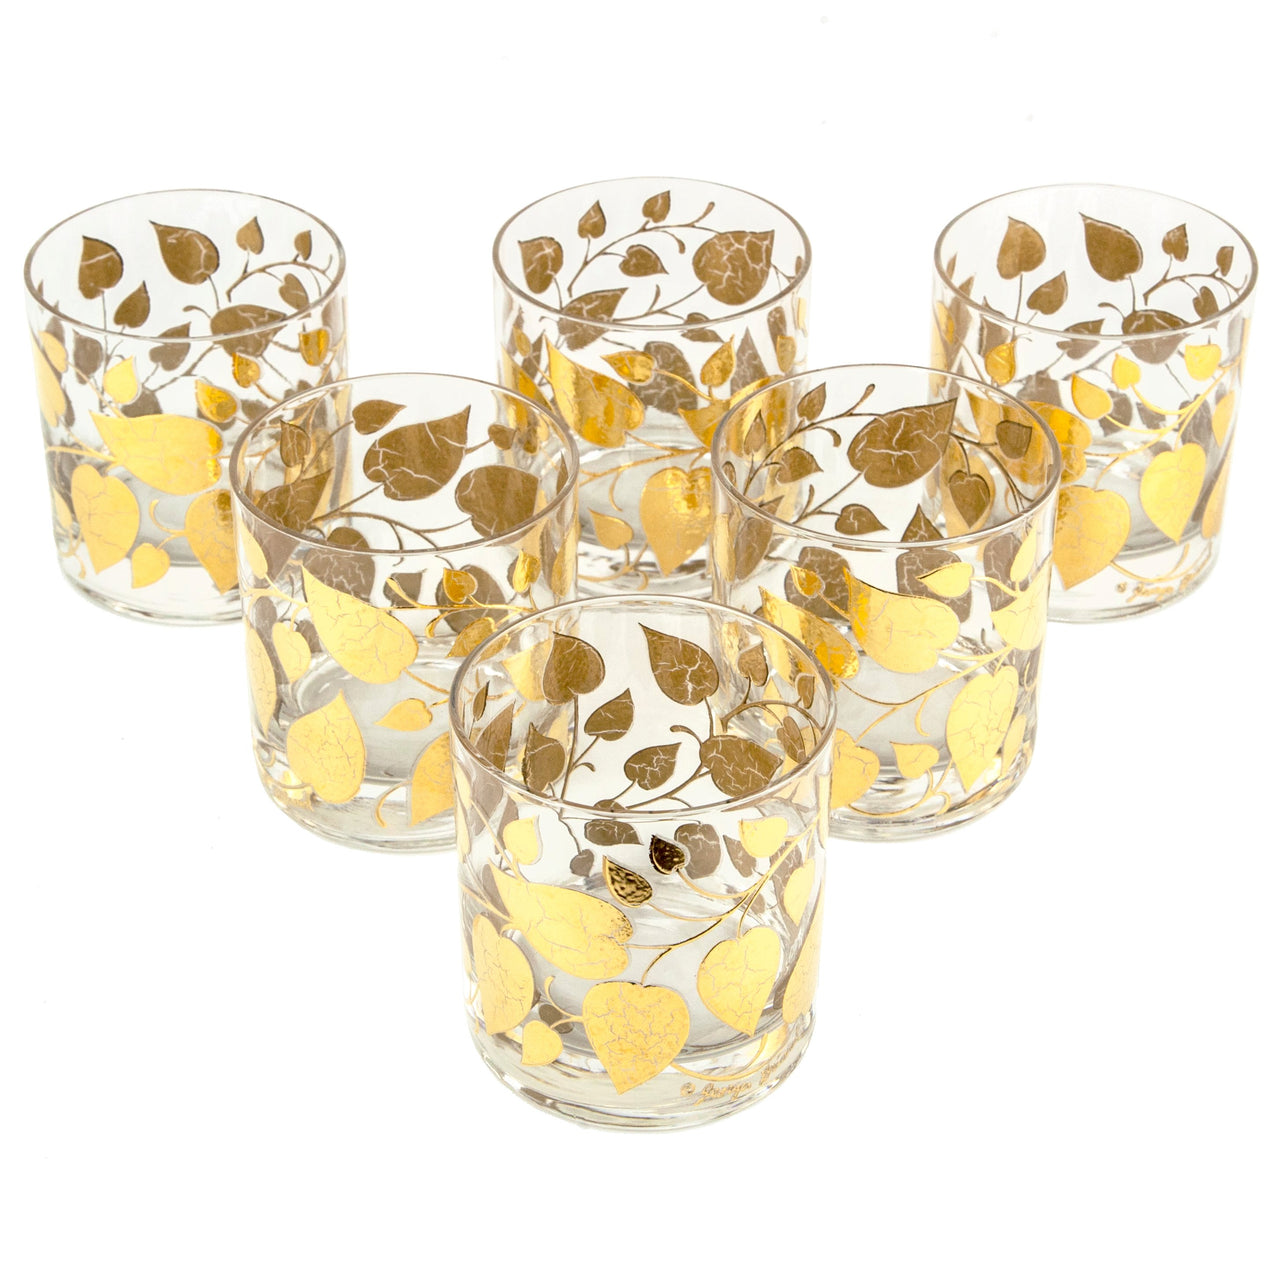 Georges Briard Gold Leaves Rocks Glasses | The Hour Vintage